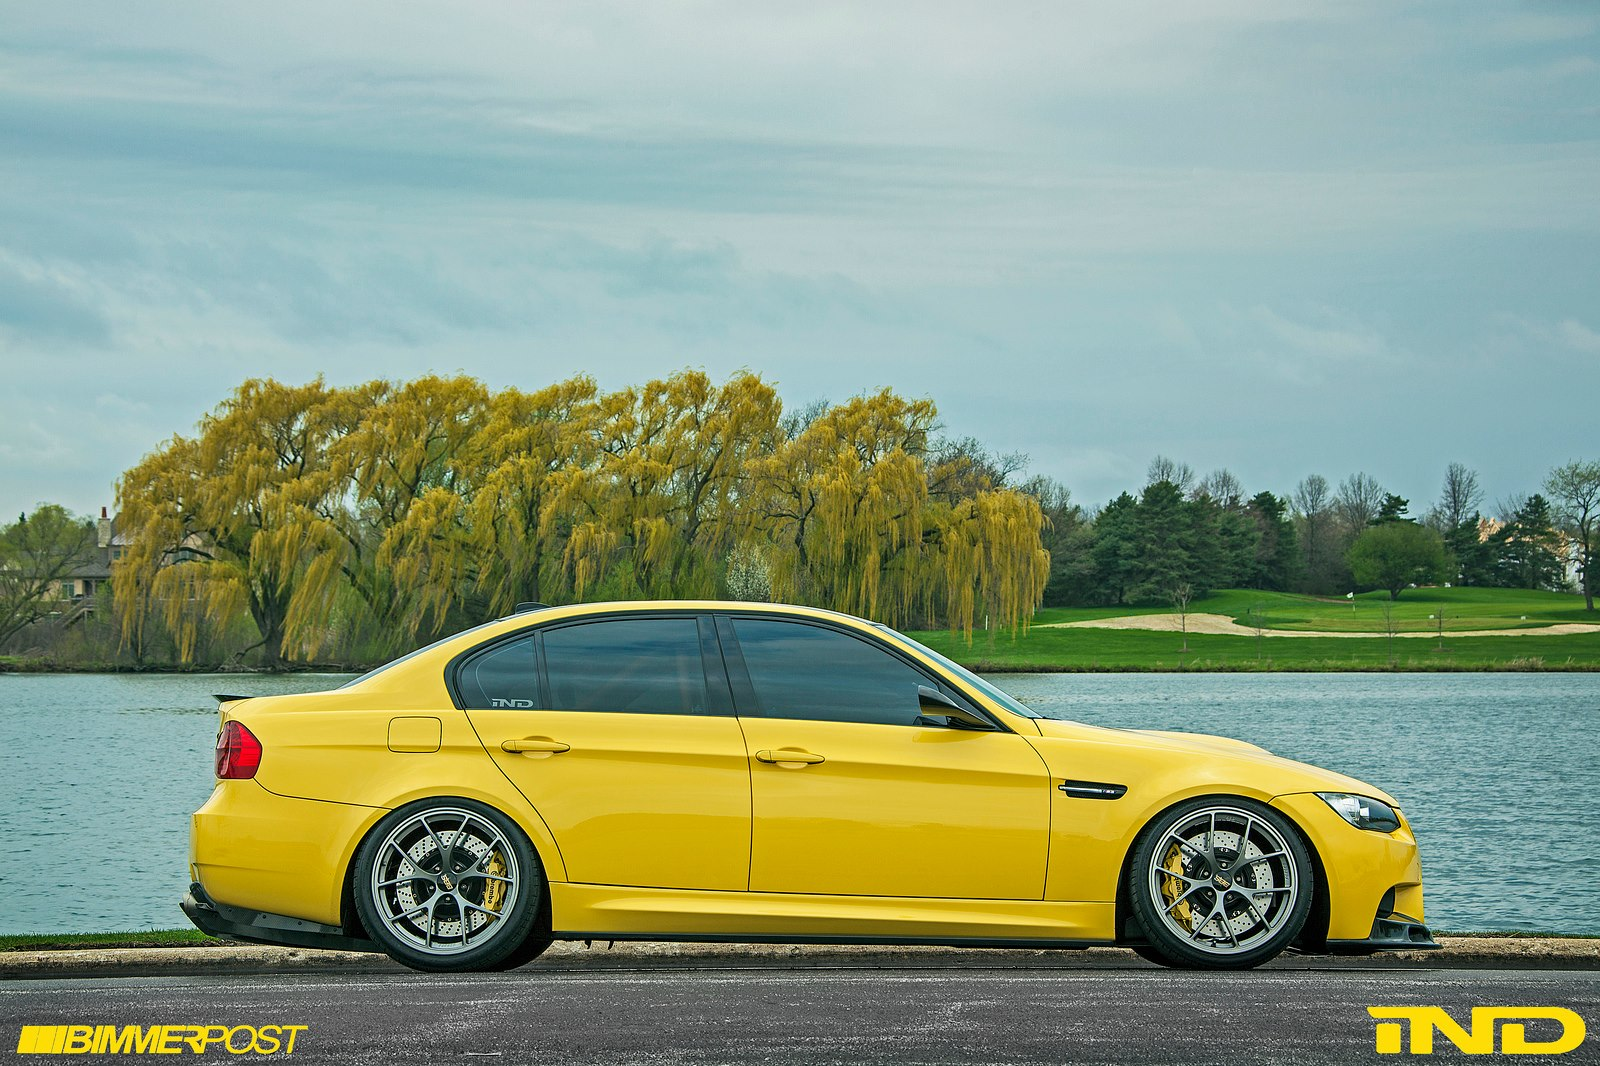 Improving Perfection Ind Distribution S Stunning Dakar Yellow E90 Bmw M3 Sedan Automotive Addicts